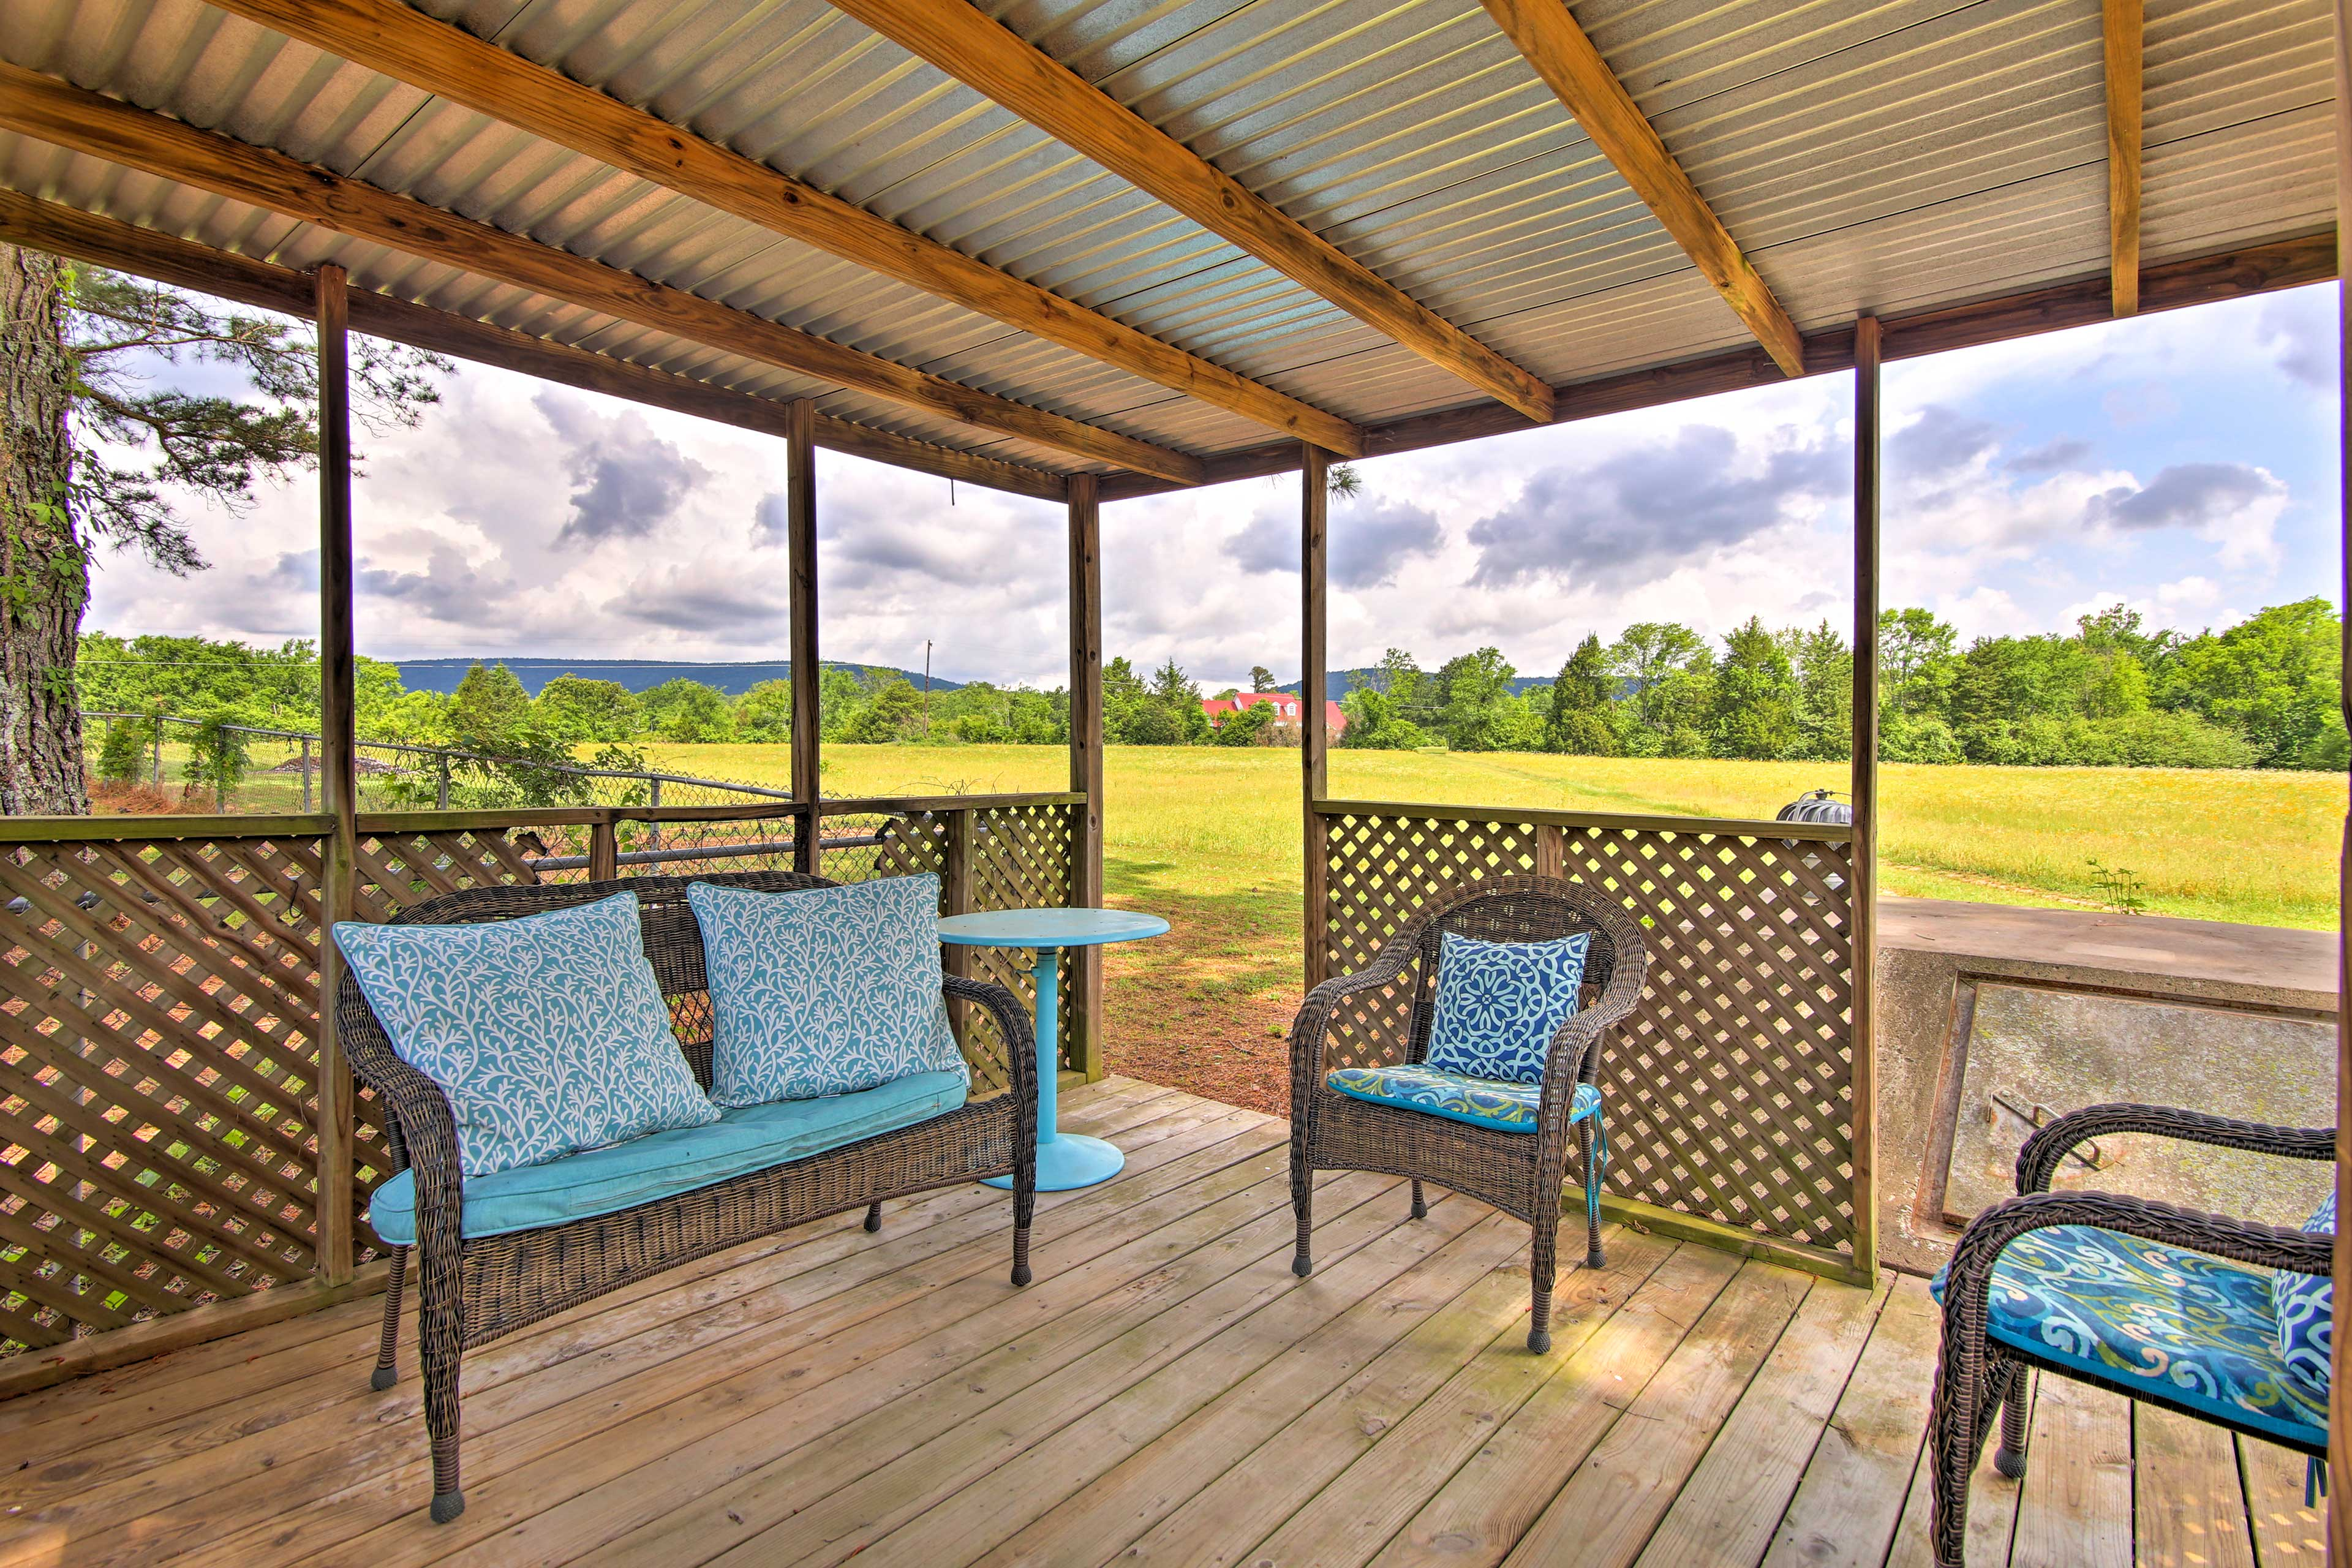 The property boasts a gazebo, fire pit, peaceful views, towering pines and more.